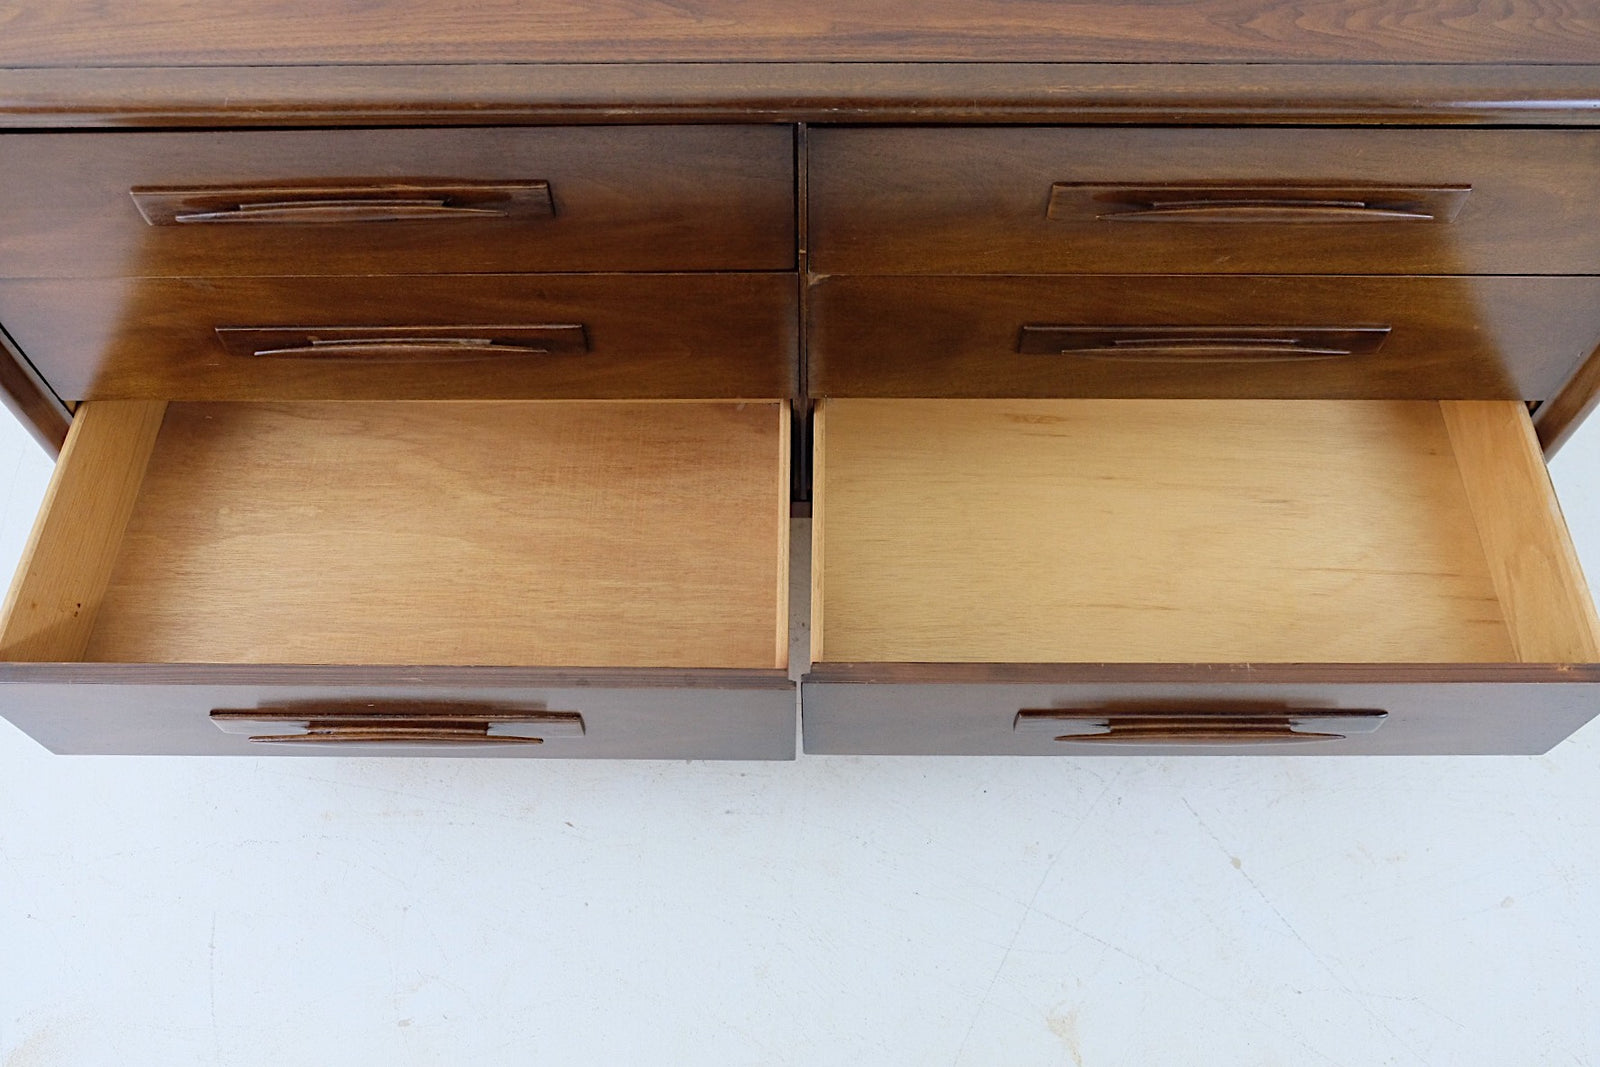 Pointy Tapered Sculptural Wooden Handles Carved Double Low Dresser Mid Century Modern Six Drawers